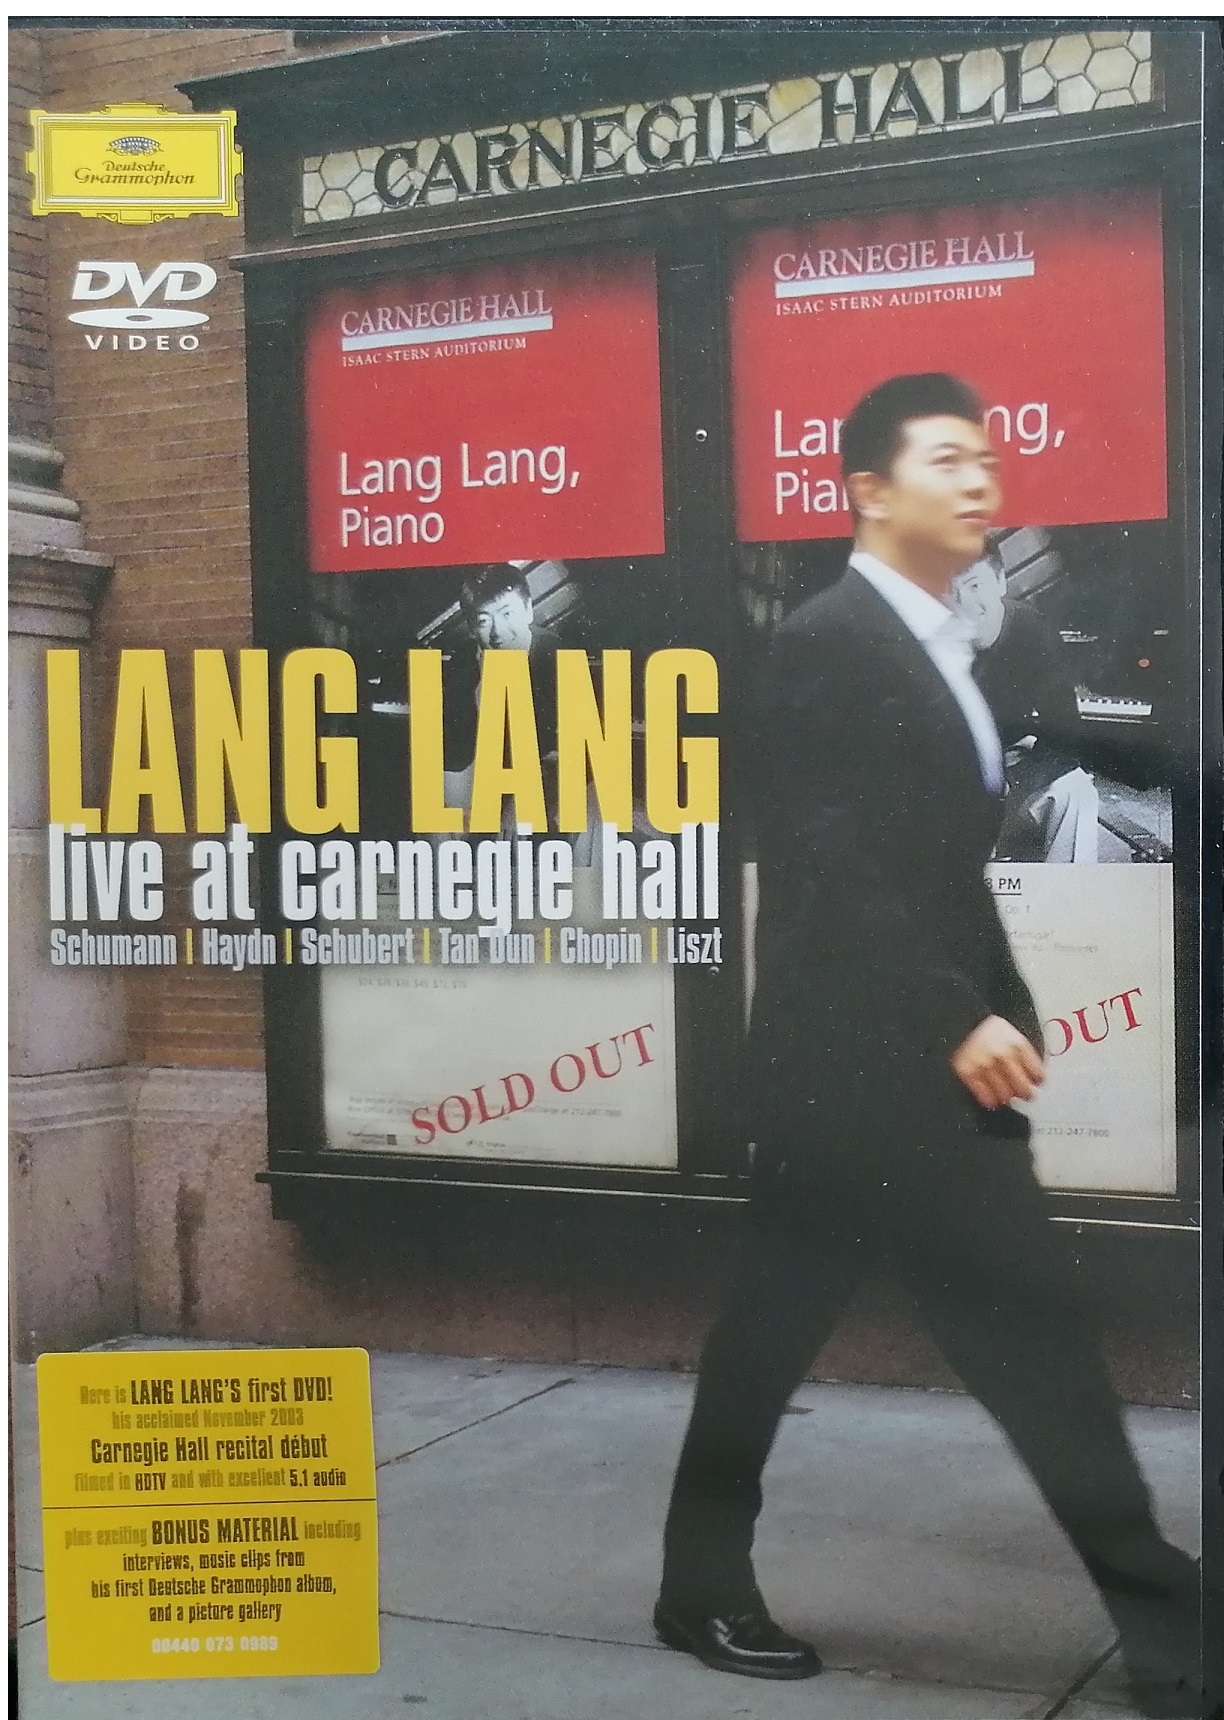 LANG LANG - Live at carnegie hall - DVD plast